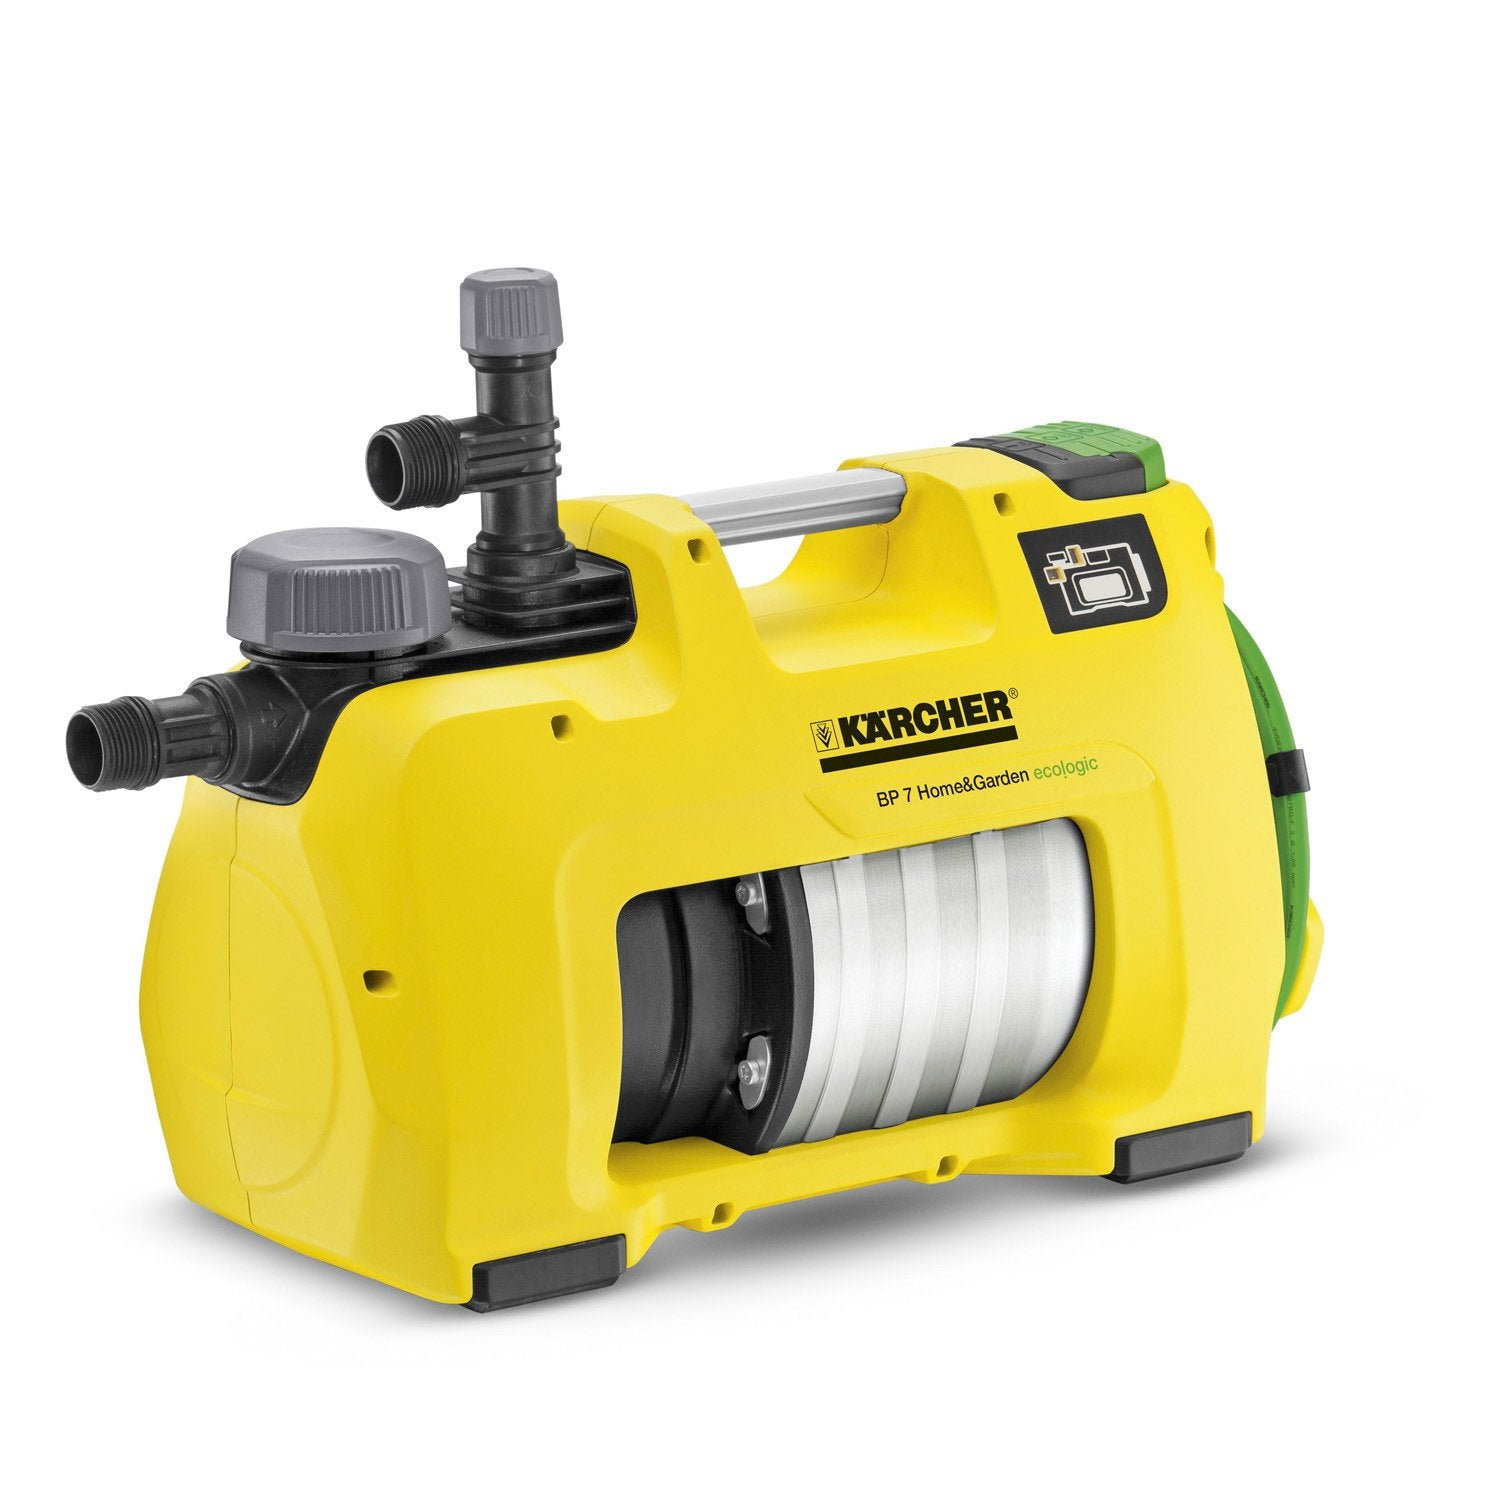 Pompe arrosage automatique karcher bp7 home and garden - Karcher k4 leroy merlin ...